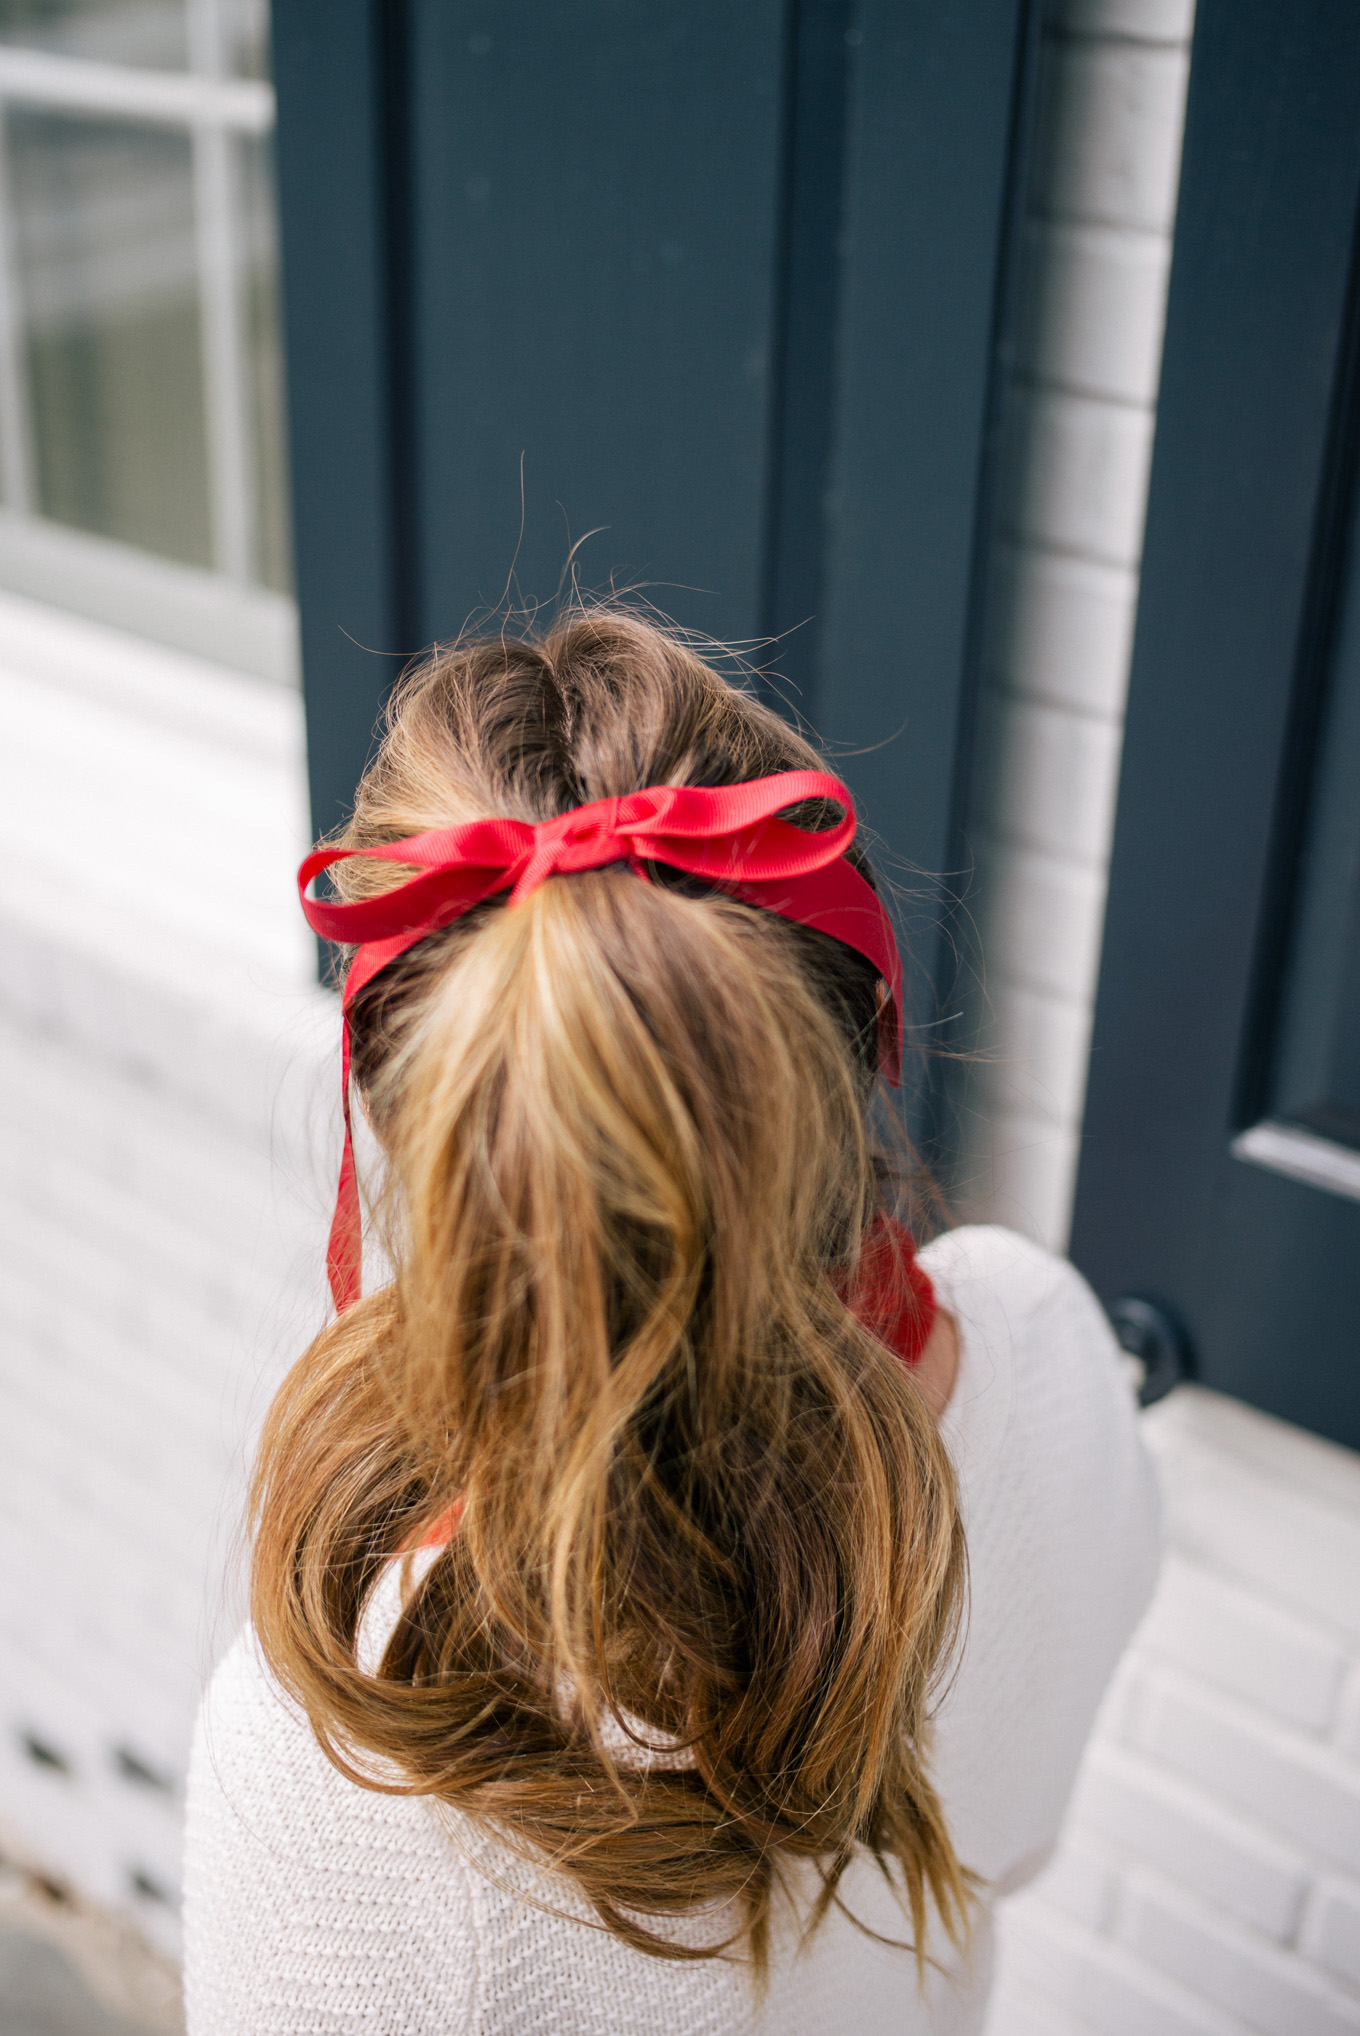 6 simple holiday hairstyles - with the party-ready hair tutorials - that are sure to WOW at your next event this holiday season. | glitterinc.com | @glitterinc - Holiday High Pony Tail - 6 Simple Holiday Hairstyles That Are Sure to Wow by North Carolina style blogger Glitter, Inc